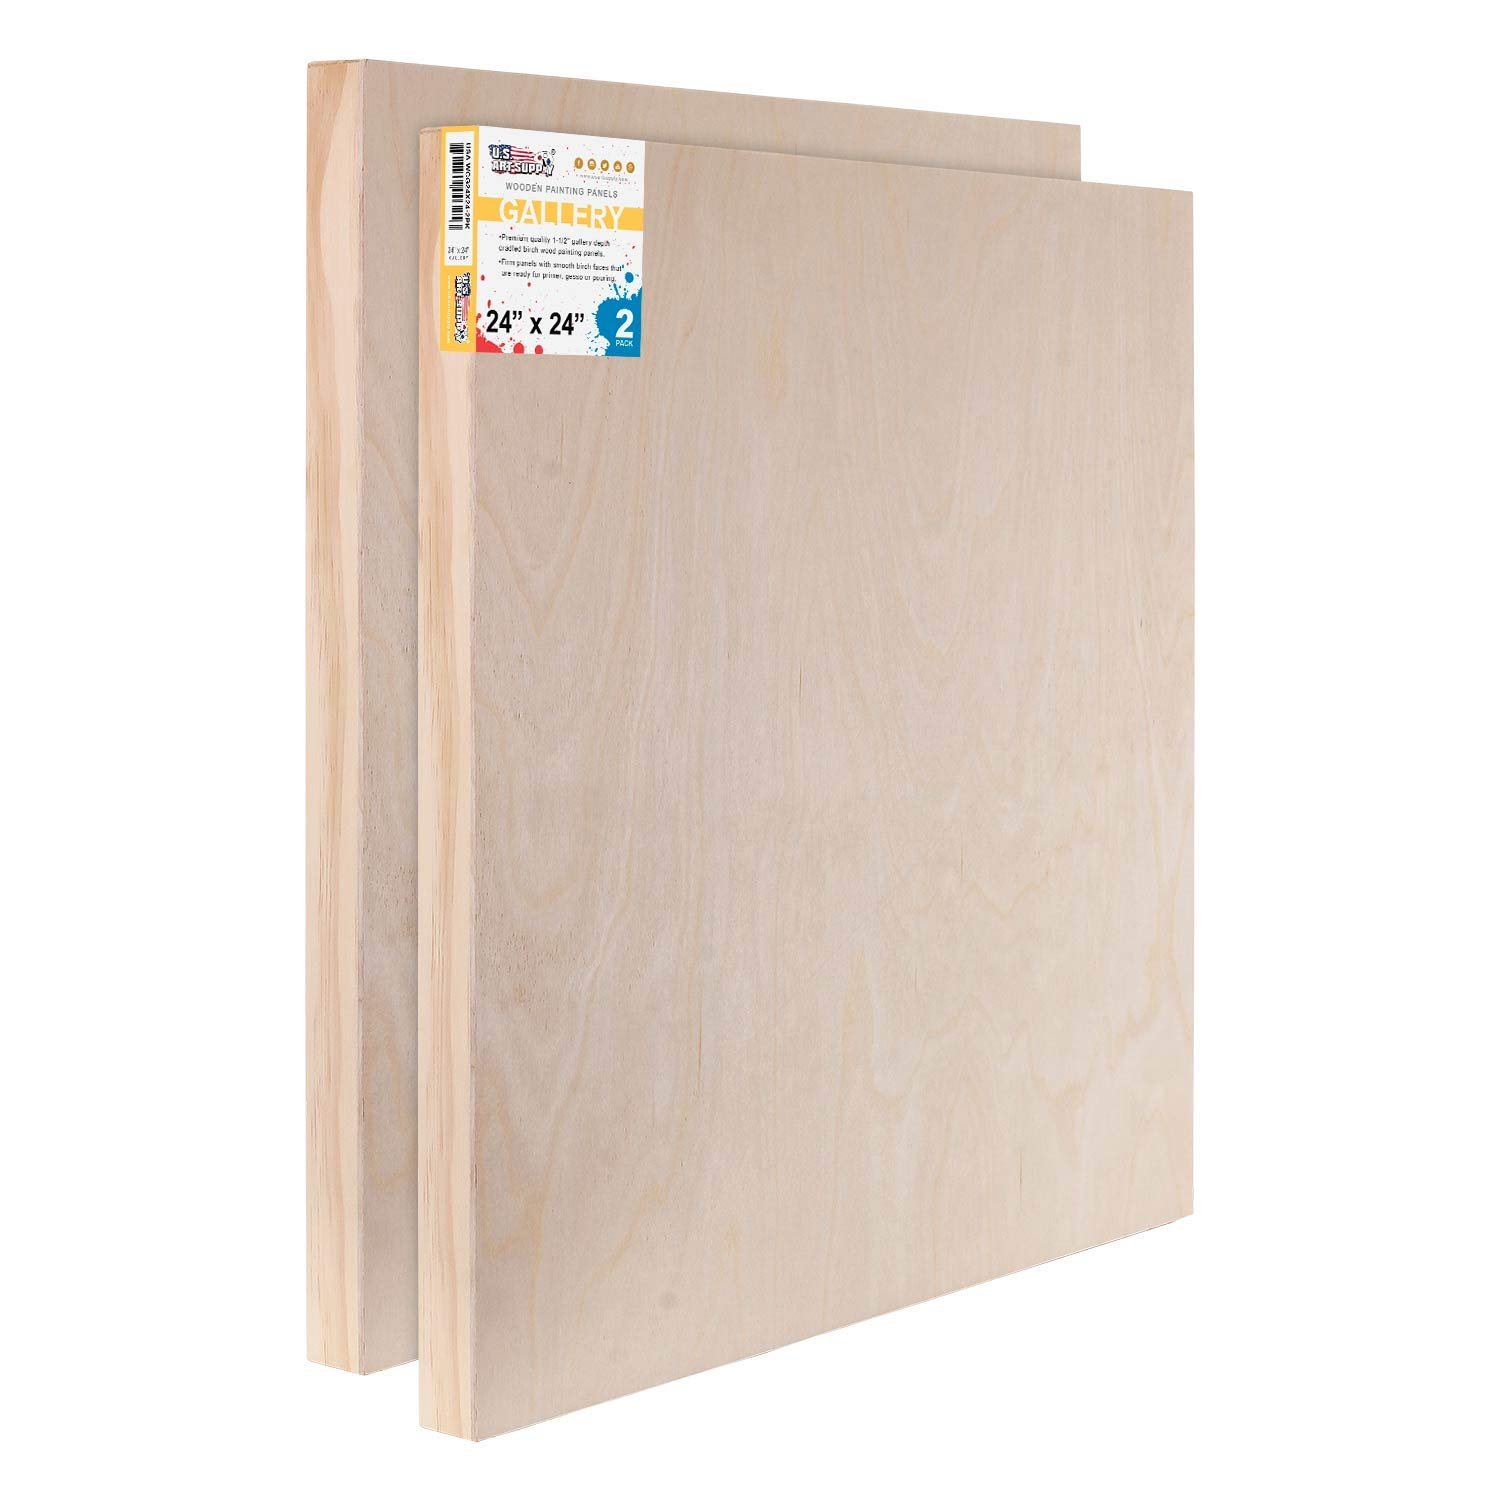 U.S. Art Supply 24'' x 24'' Birch Wood Paint Pouring Panel Boards, Gallery 1-1/2'' Deep Cradle (Pack of 2) - Artist Depth Wooden Wall Canvases - Painting Mixed-Media Craft, Acrylic, Oil, Encaustic by US Art Supply